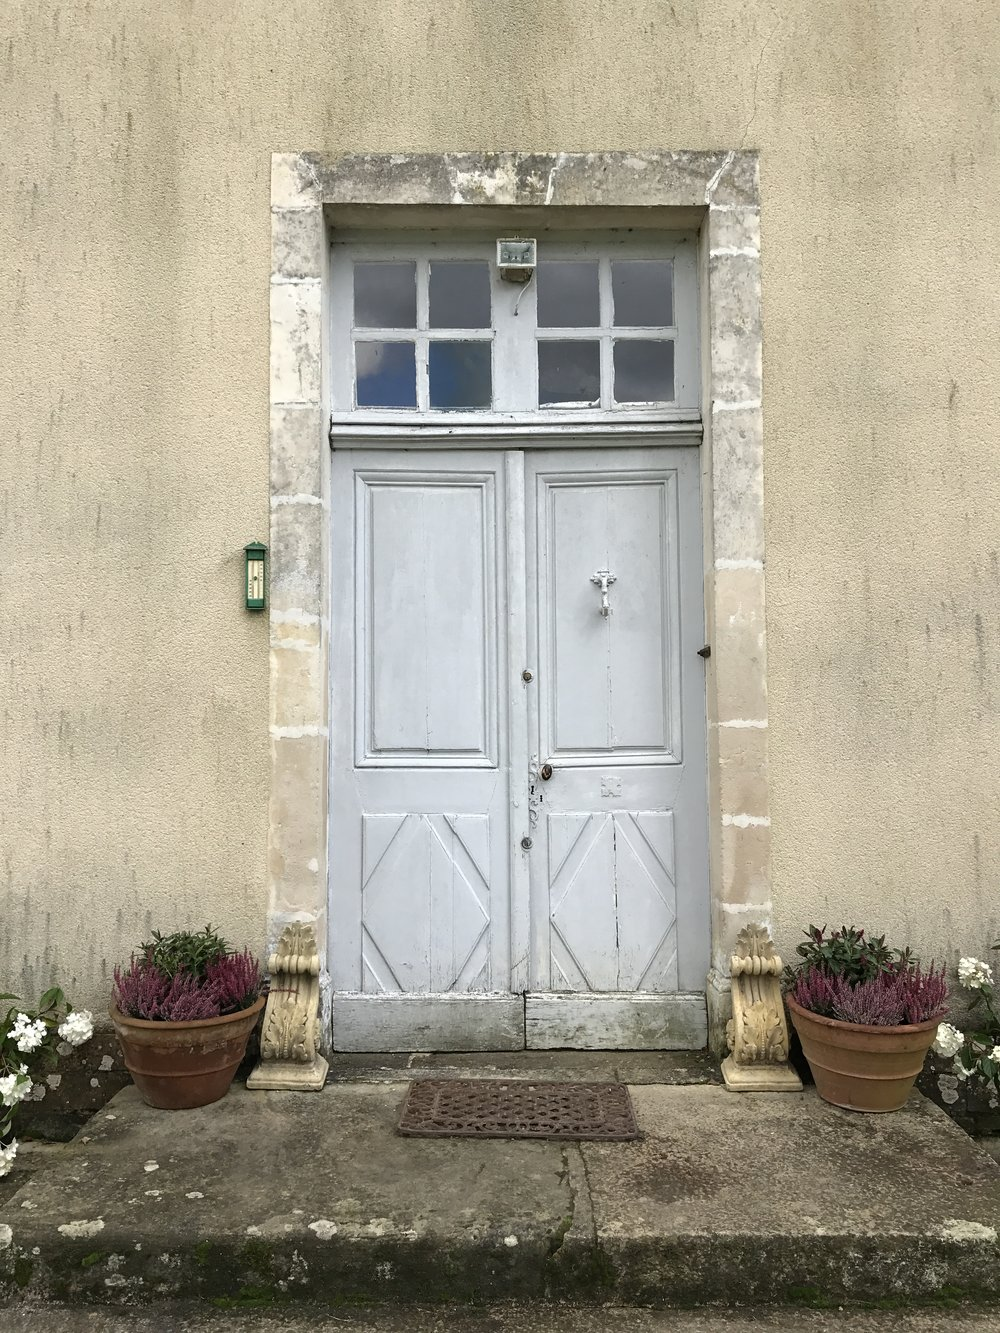 The front door at Chateau de la Ruche